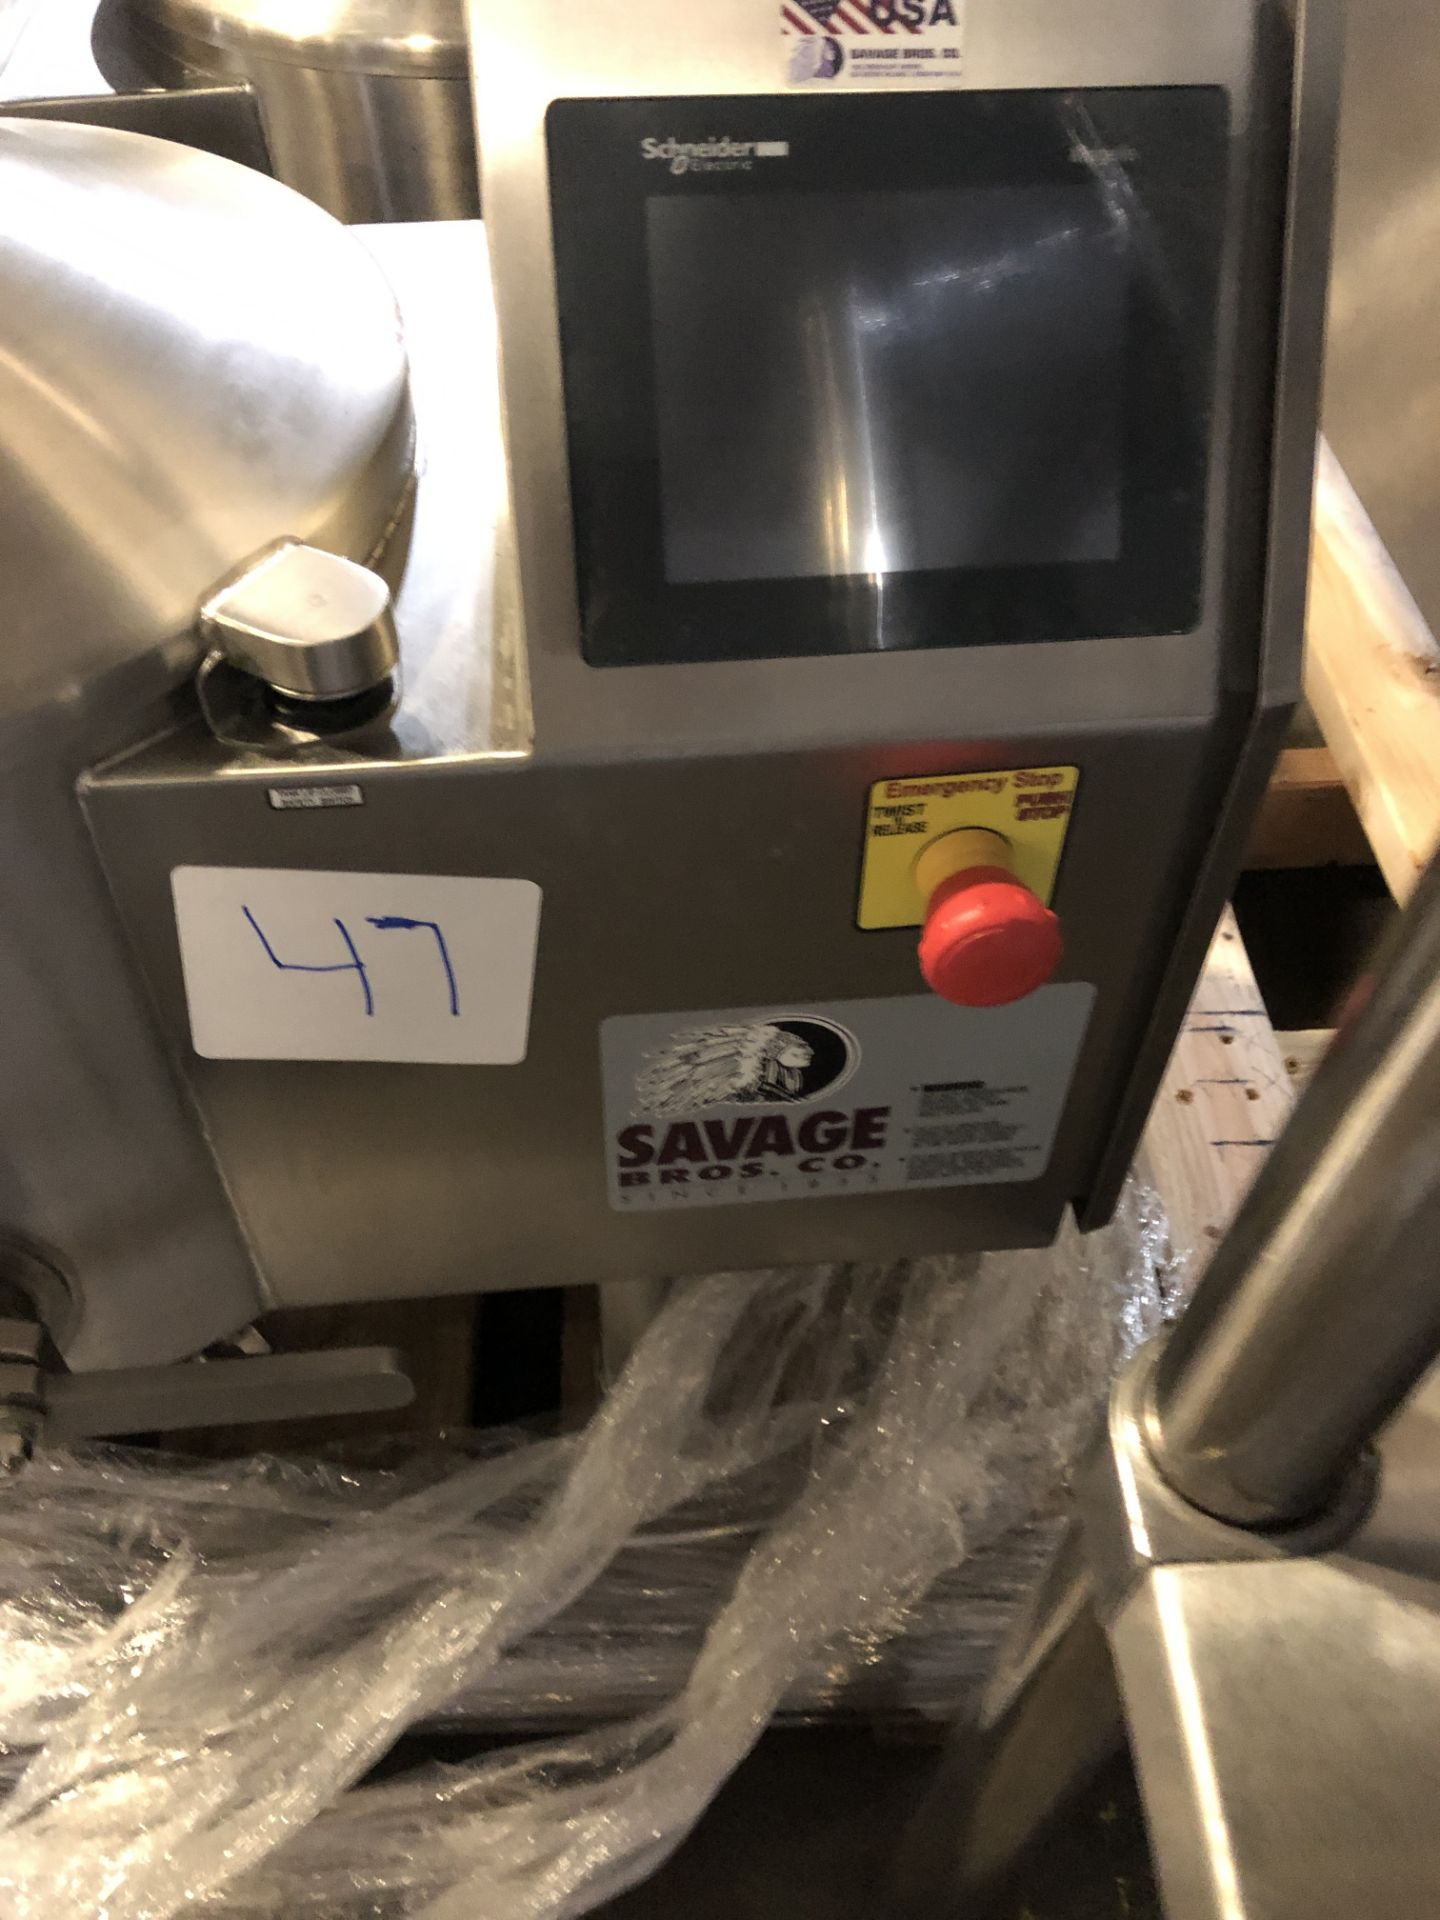 Lot 35 - Savage 50-lb Stainless Steel Chocolate Melter, model 0934-40, jacketed and agitated, electrically